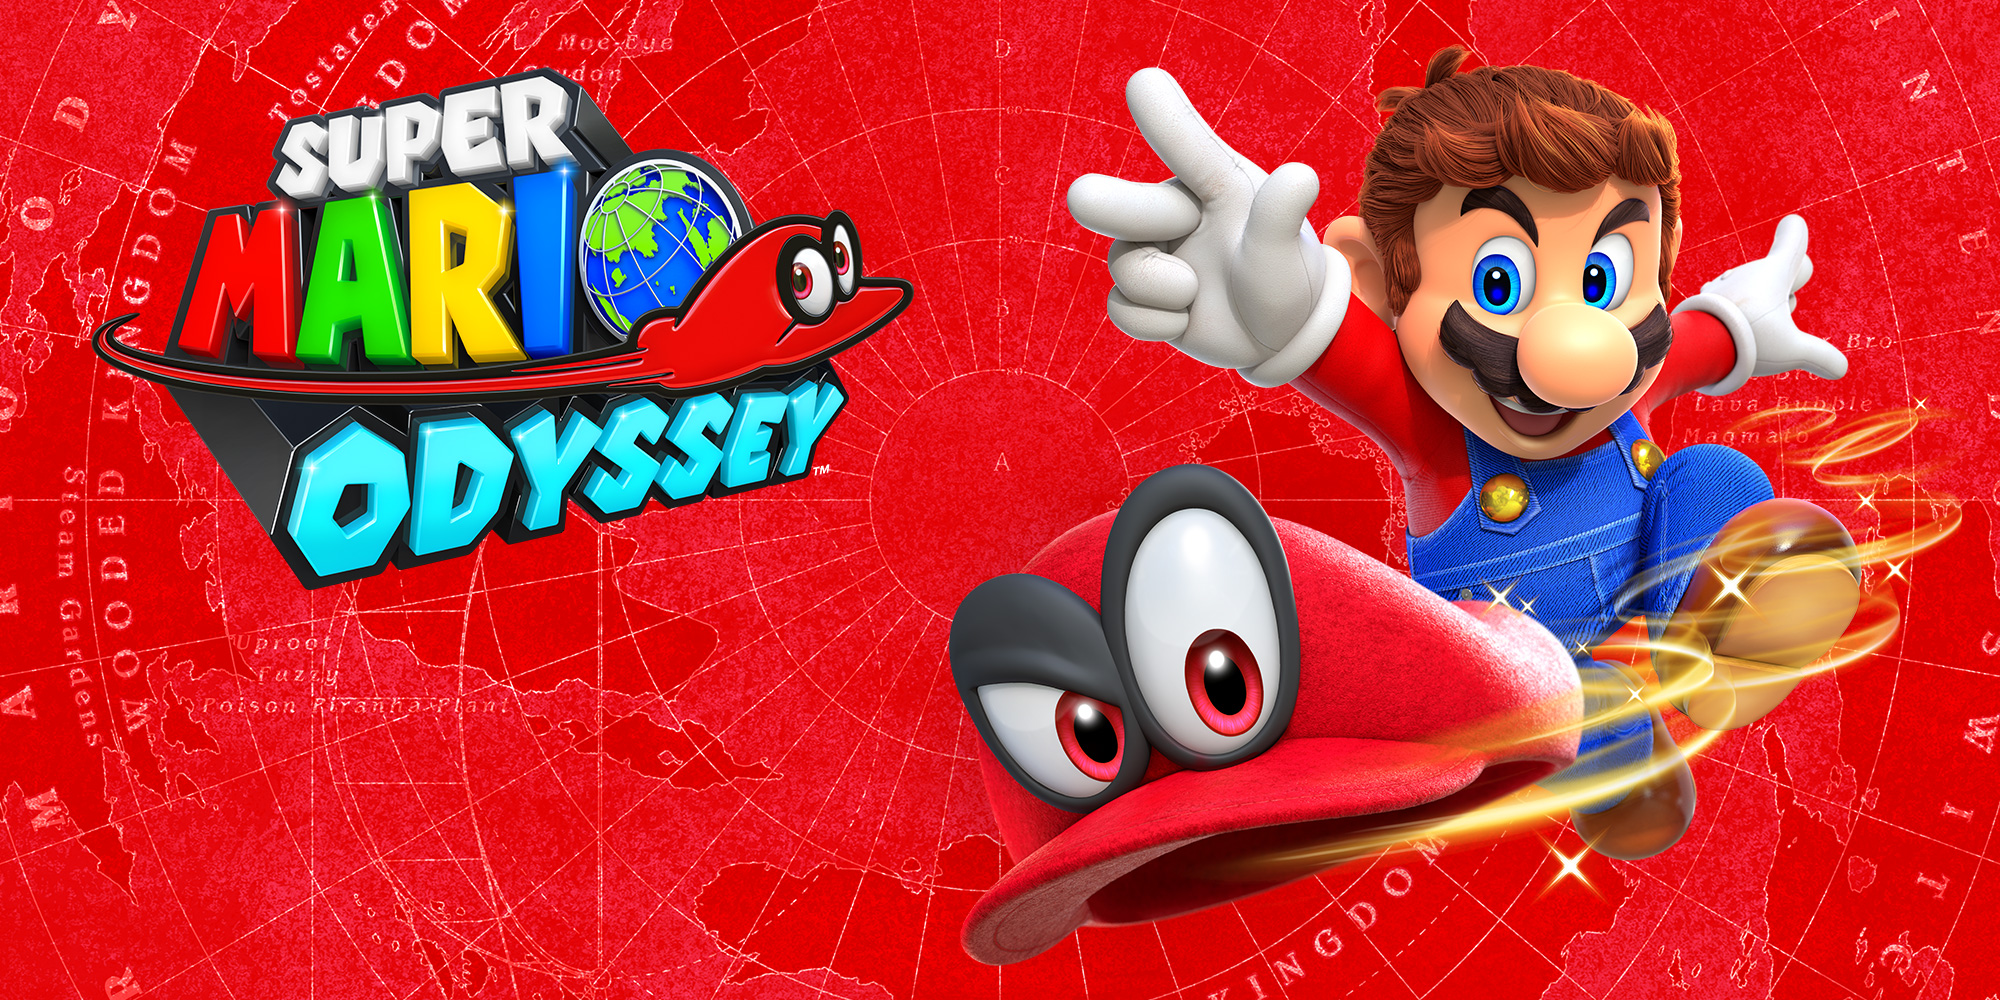 Super Mario Odyssey Runs At Above 60 FPS On Nintendo Switch